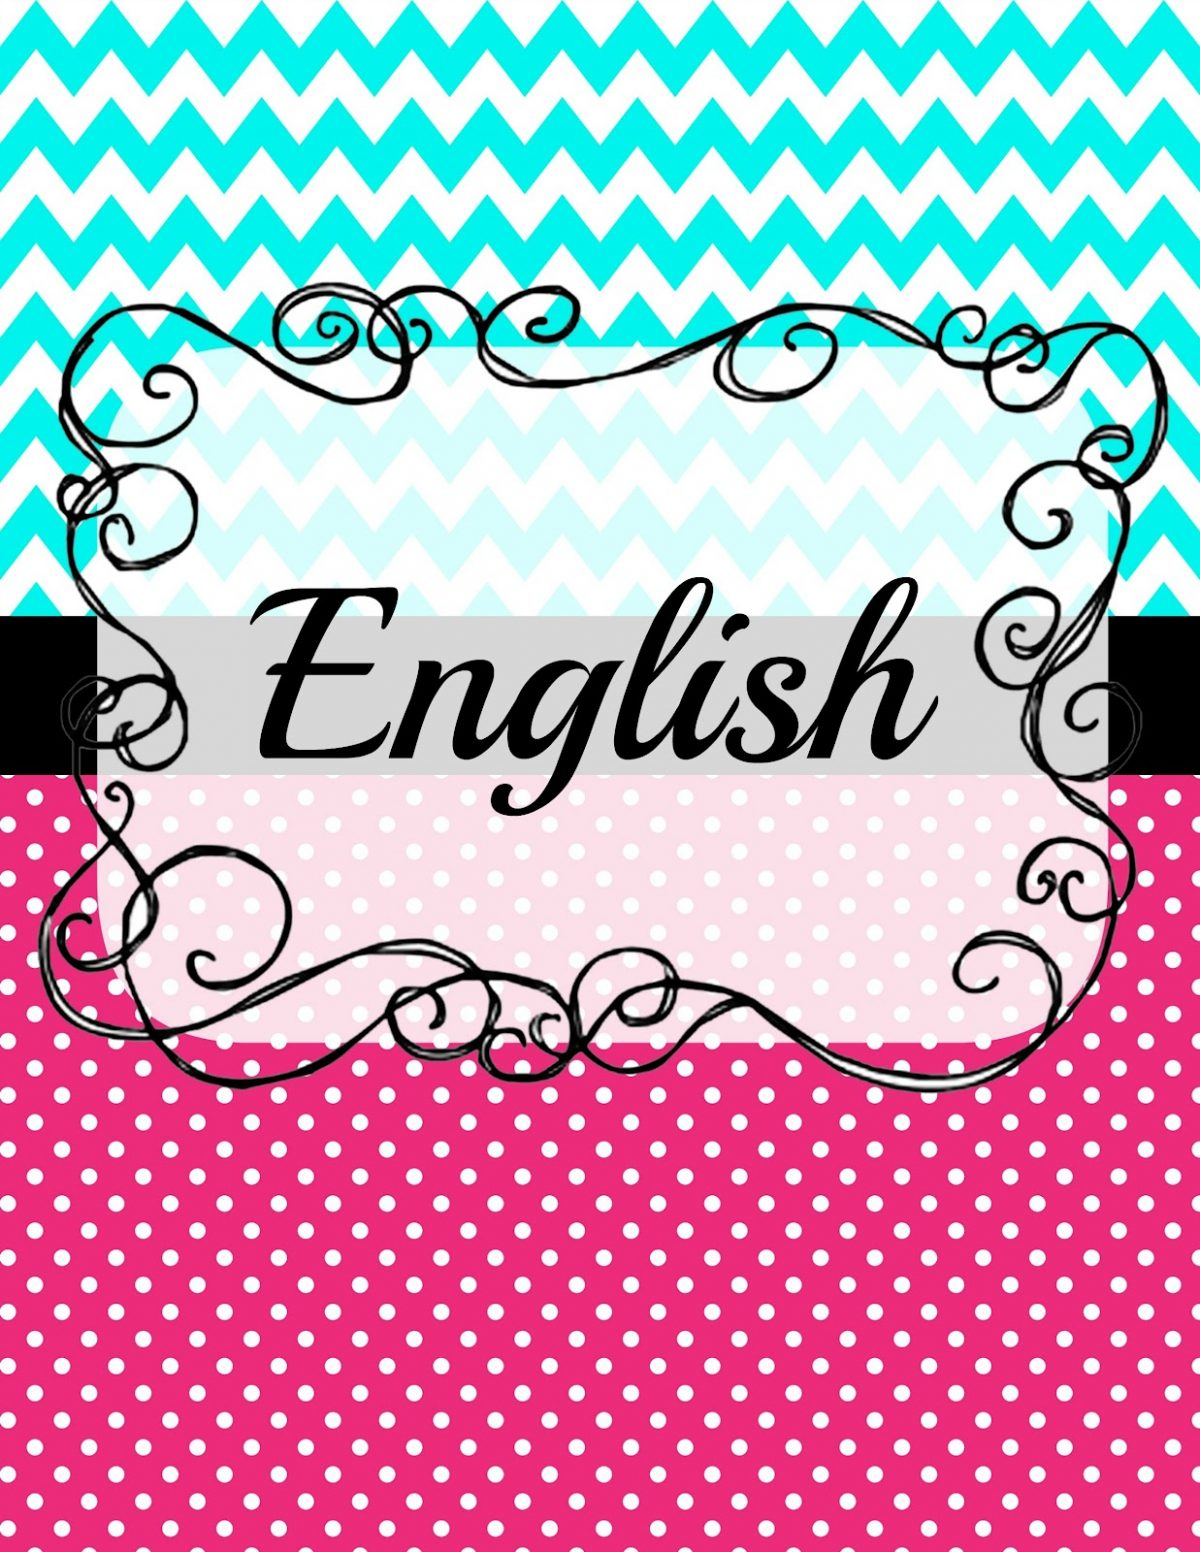 5 Pristine English Binder Cover